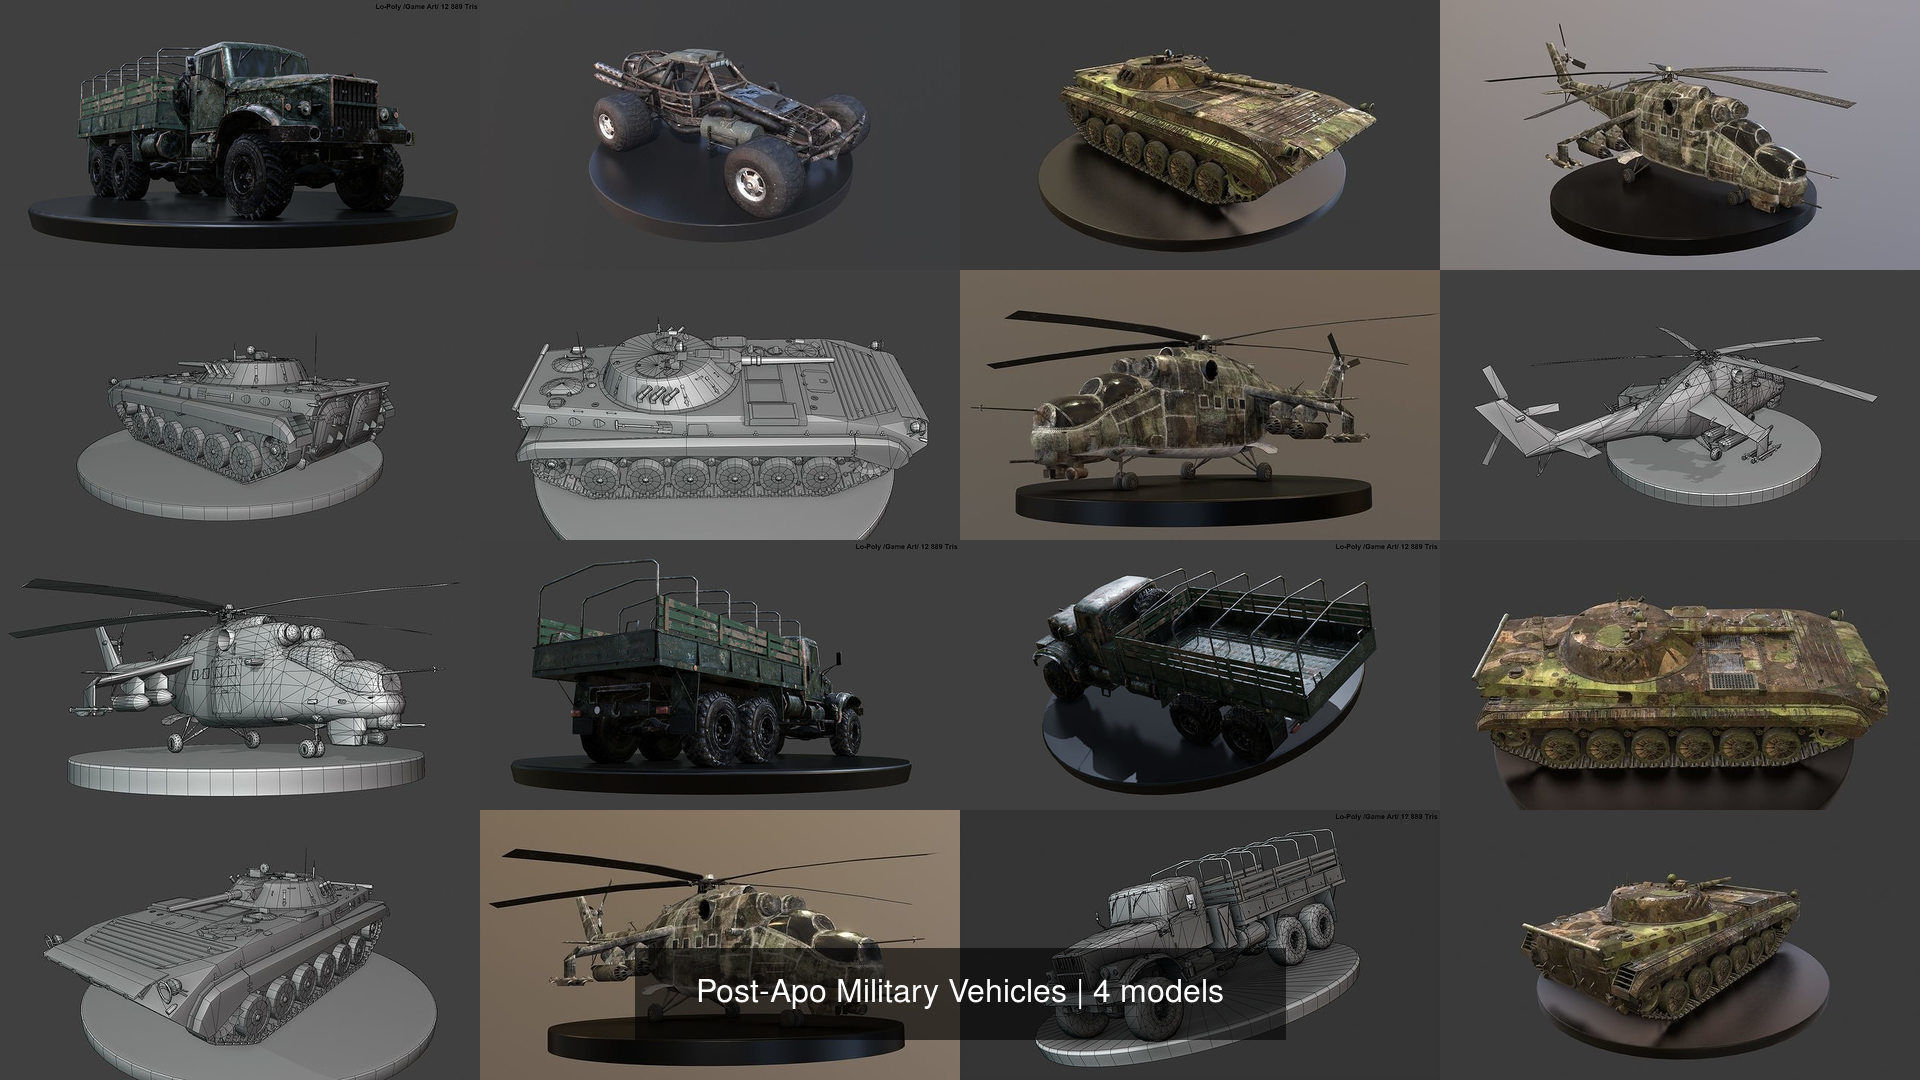 Post-Apo Military Vehicles